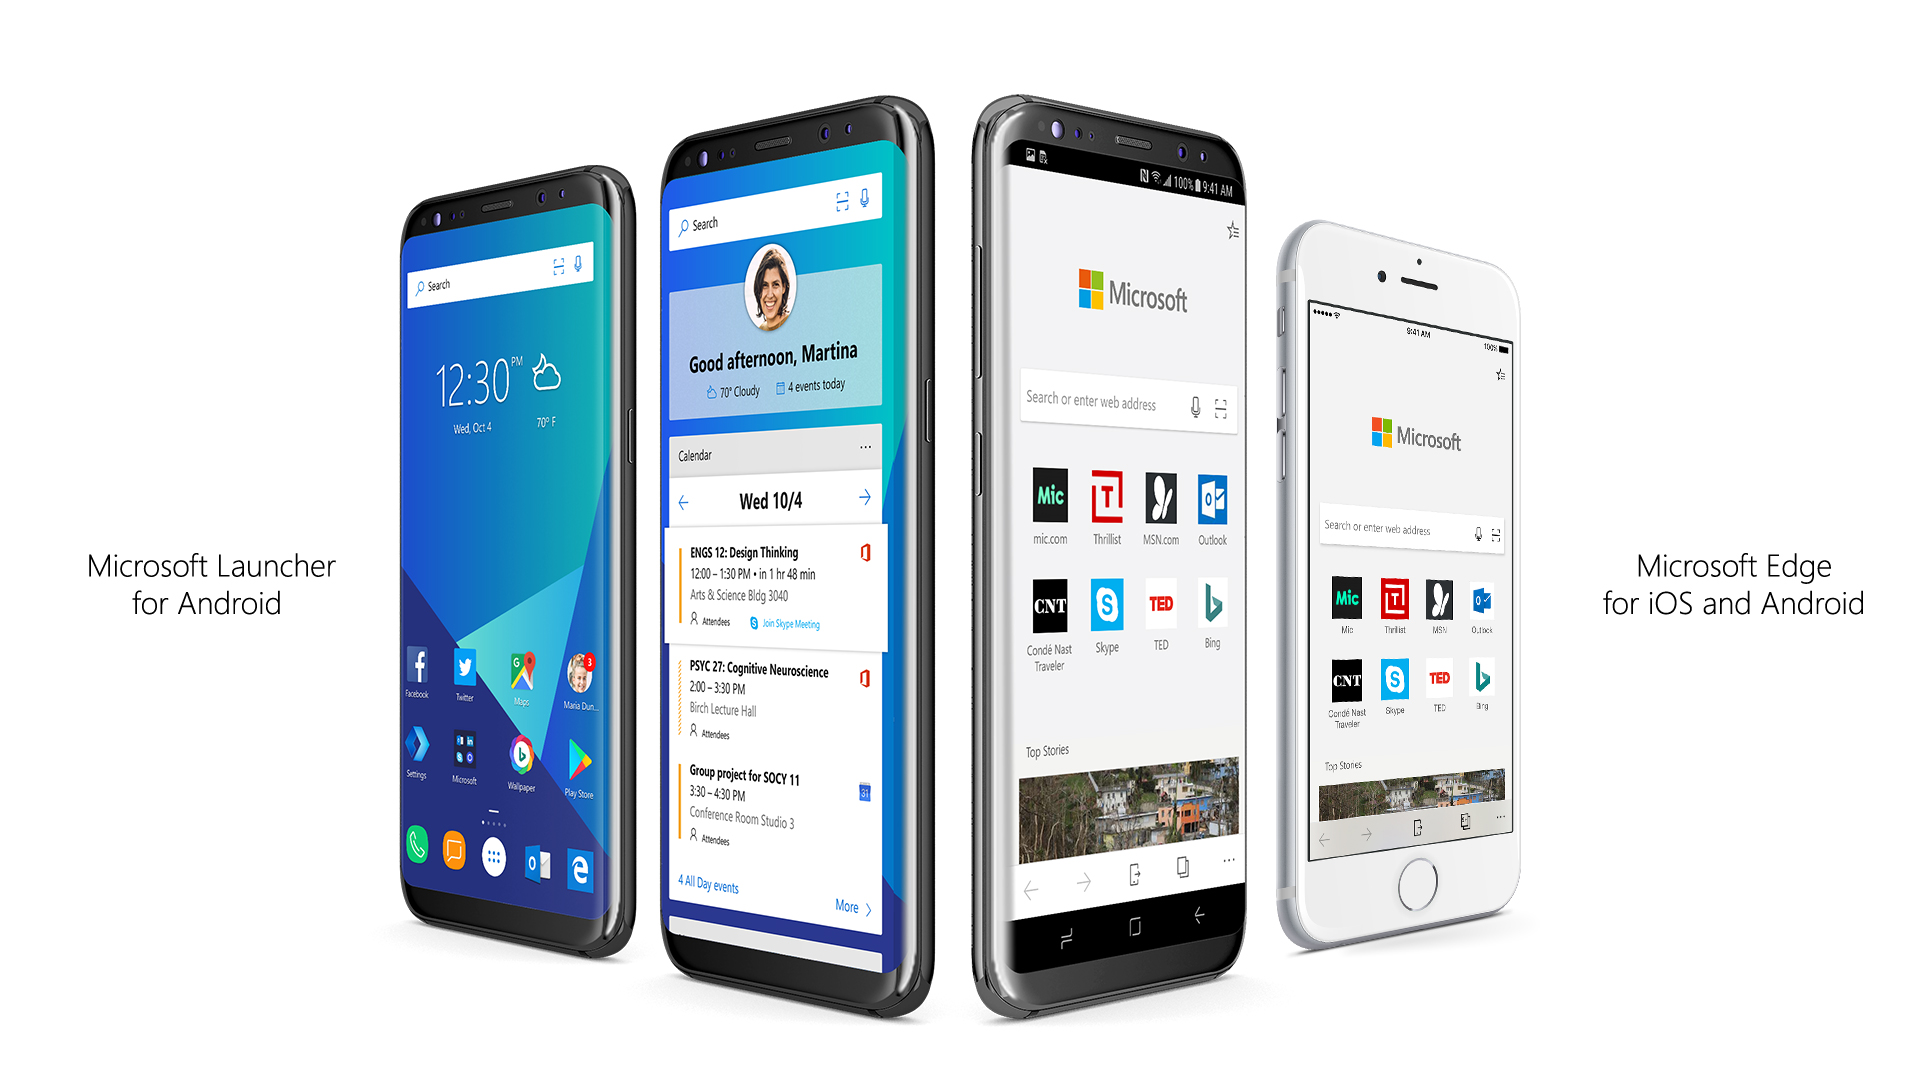 Microsoft Edge and Microsoft Launcher